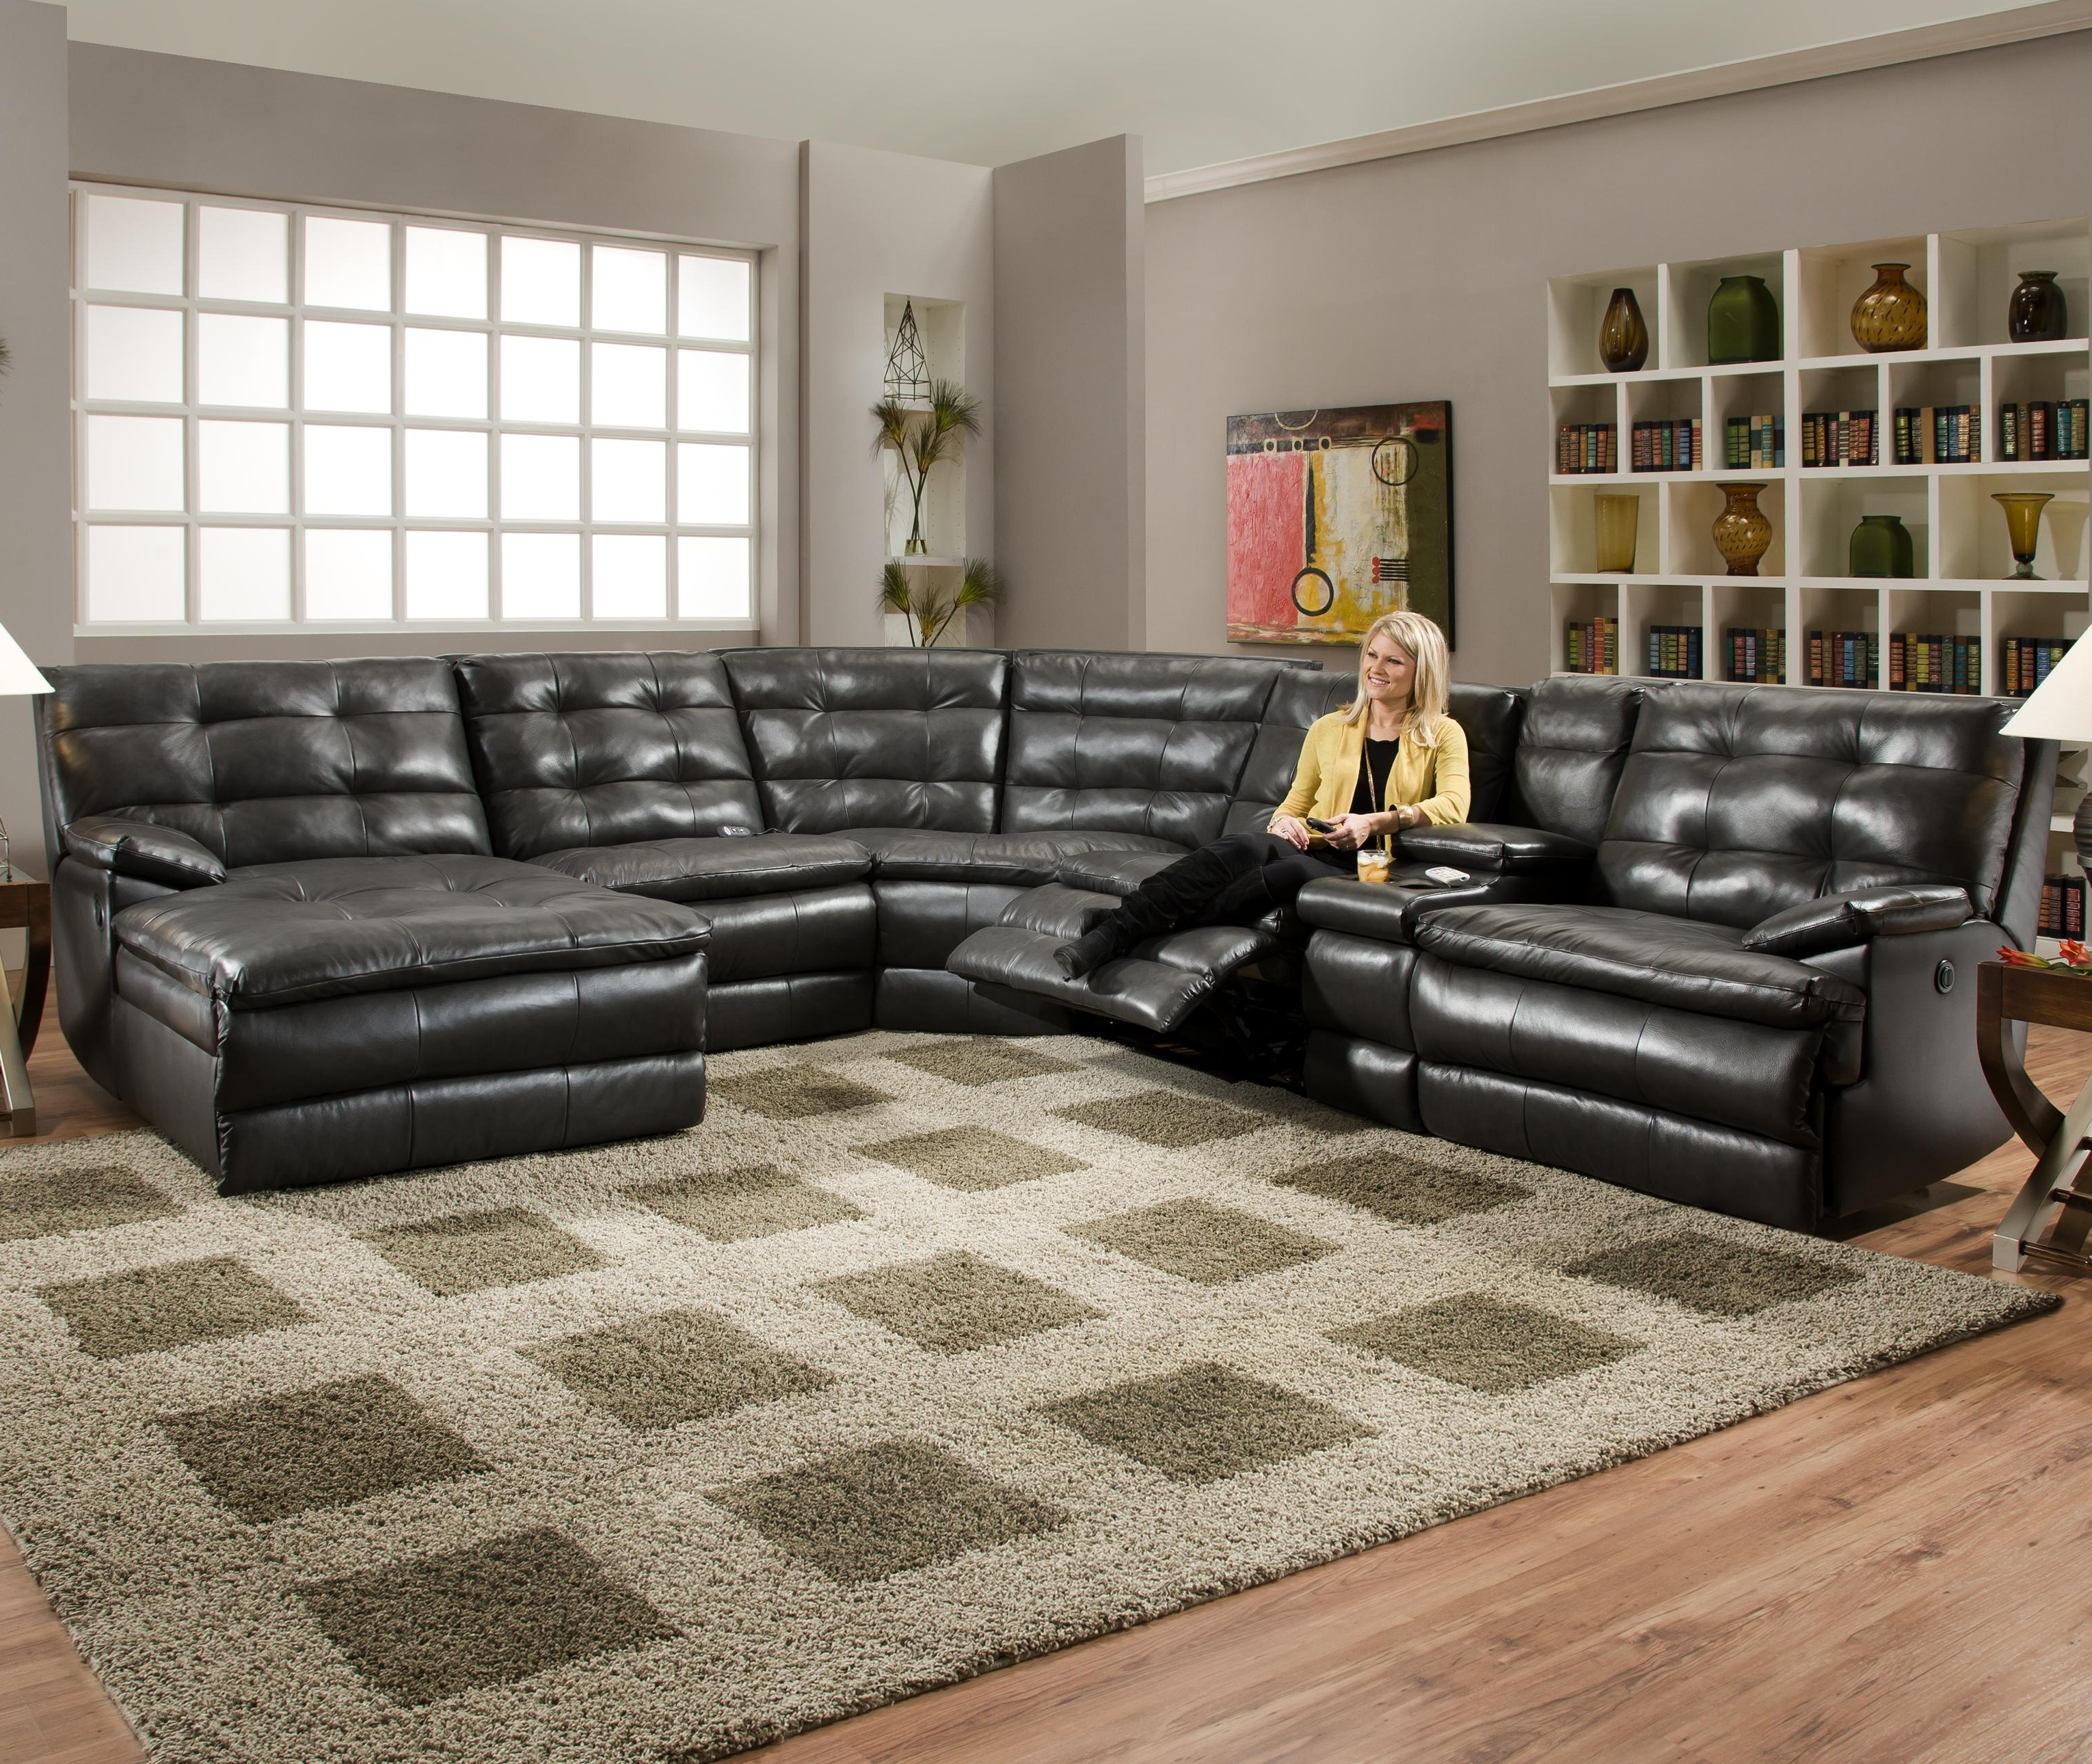 2017 Sectional Sofa Design: Recliner Sectional Sofas Microfiber In Sectional Sofas At Birmingham Al (View 13 of 15)